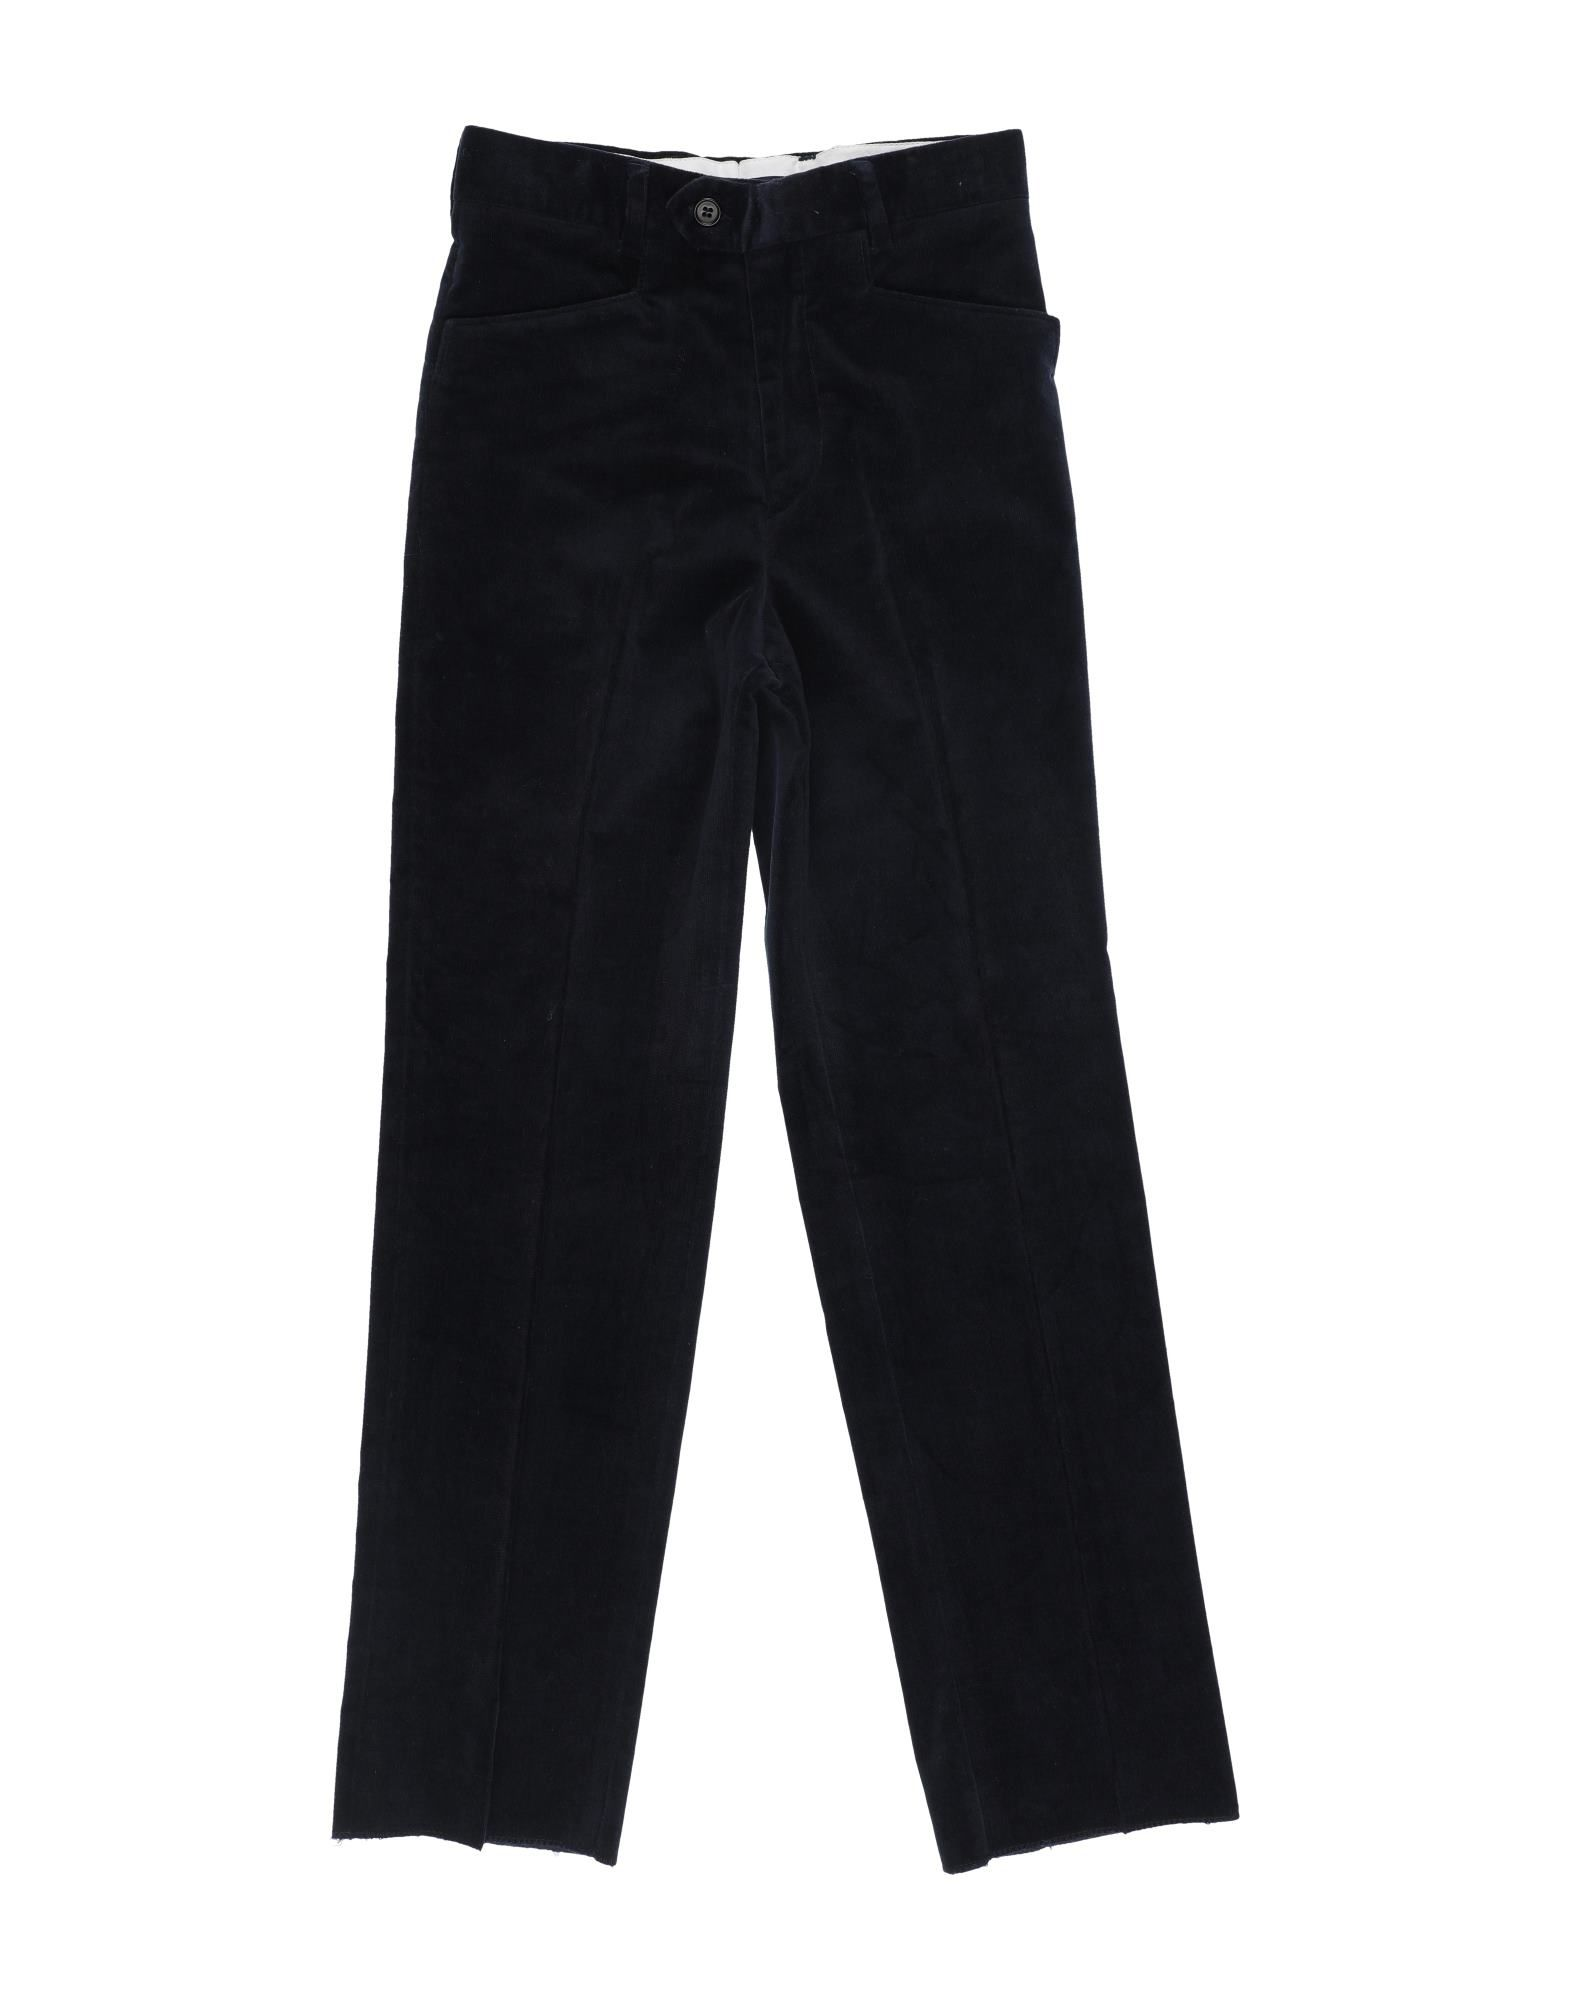 Brooksfield Kids' Casual Pants In Black